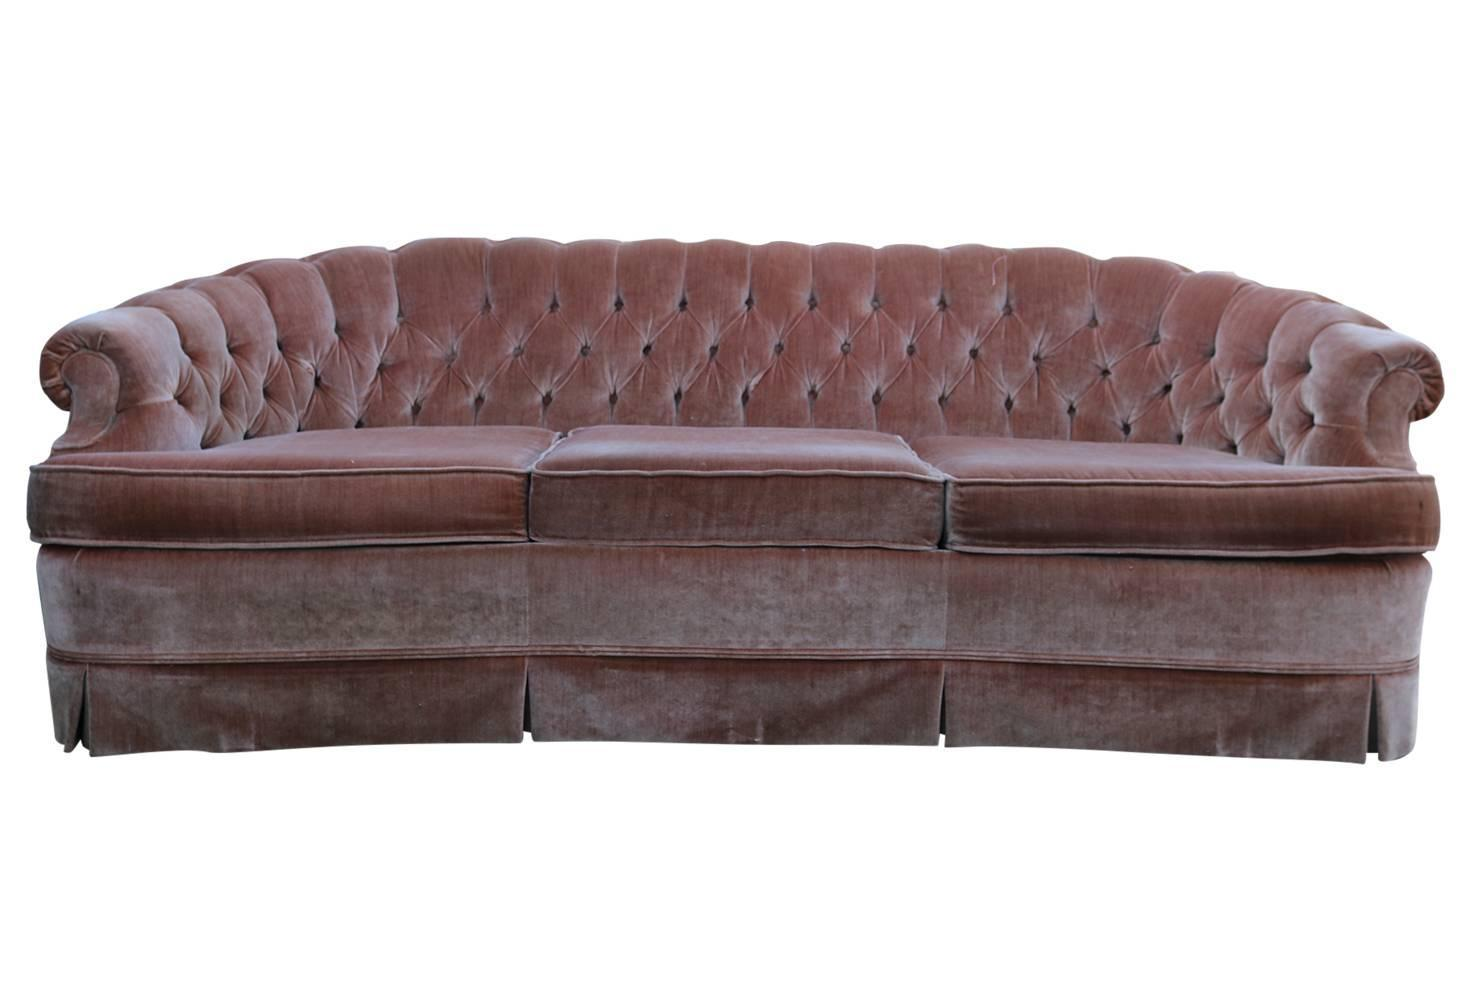 1960s tufted pink velvet chesterfield sofa for sale at 1stdibs. Black Bedroom Furniture Sets. Home Design Ideas